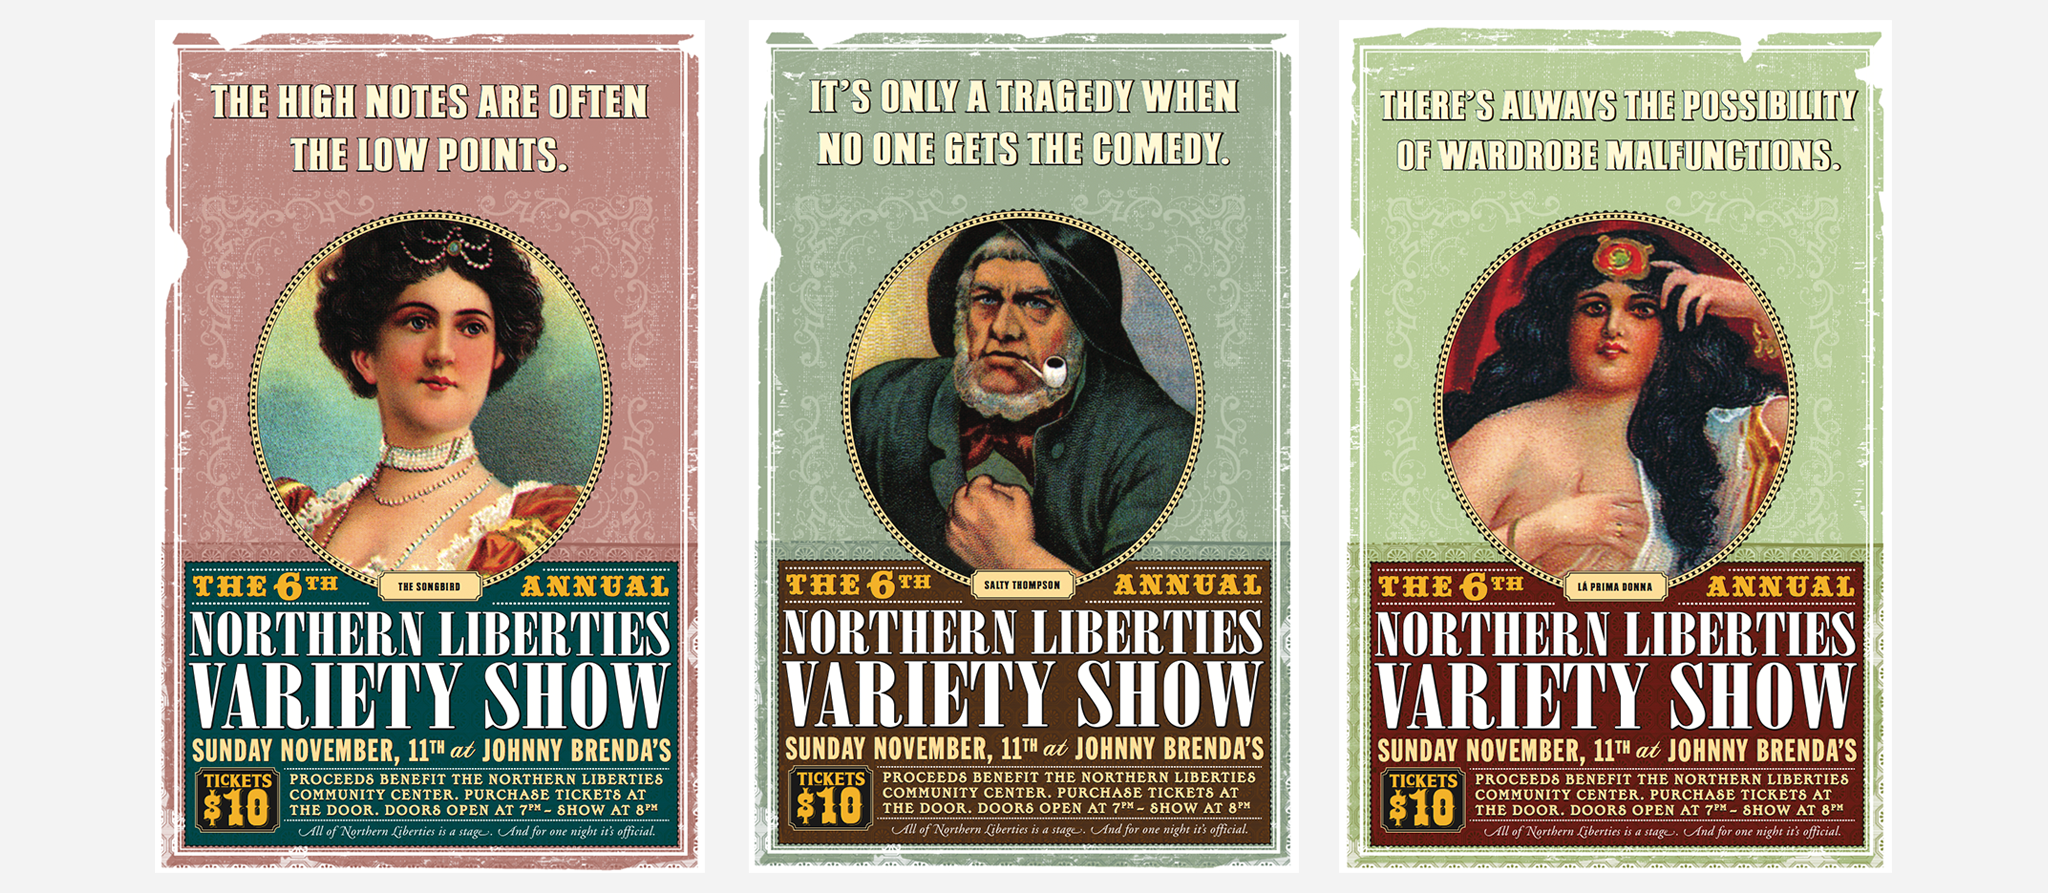 NORTHERN LIBERTIES VARIETY SHOW_3.png